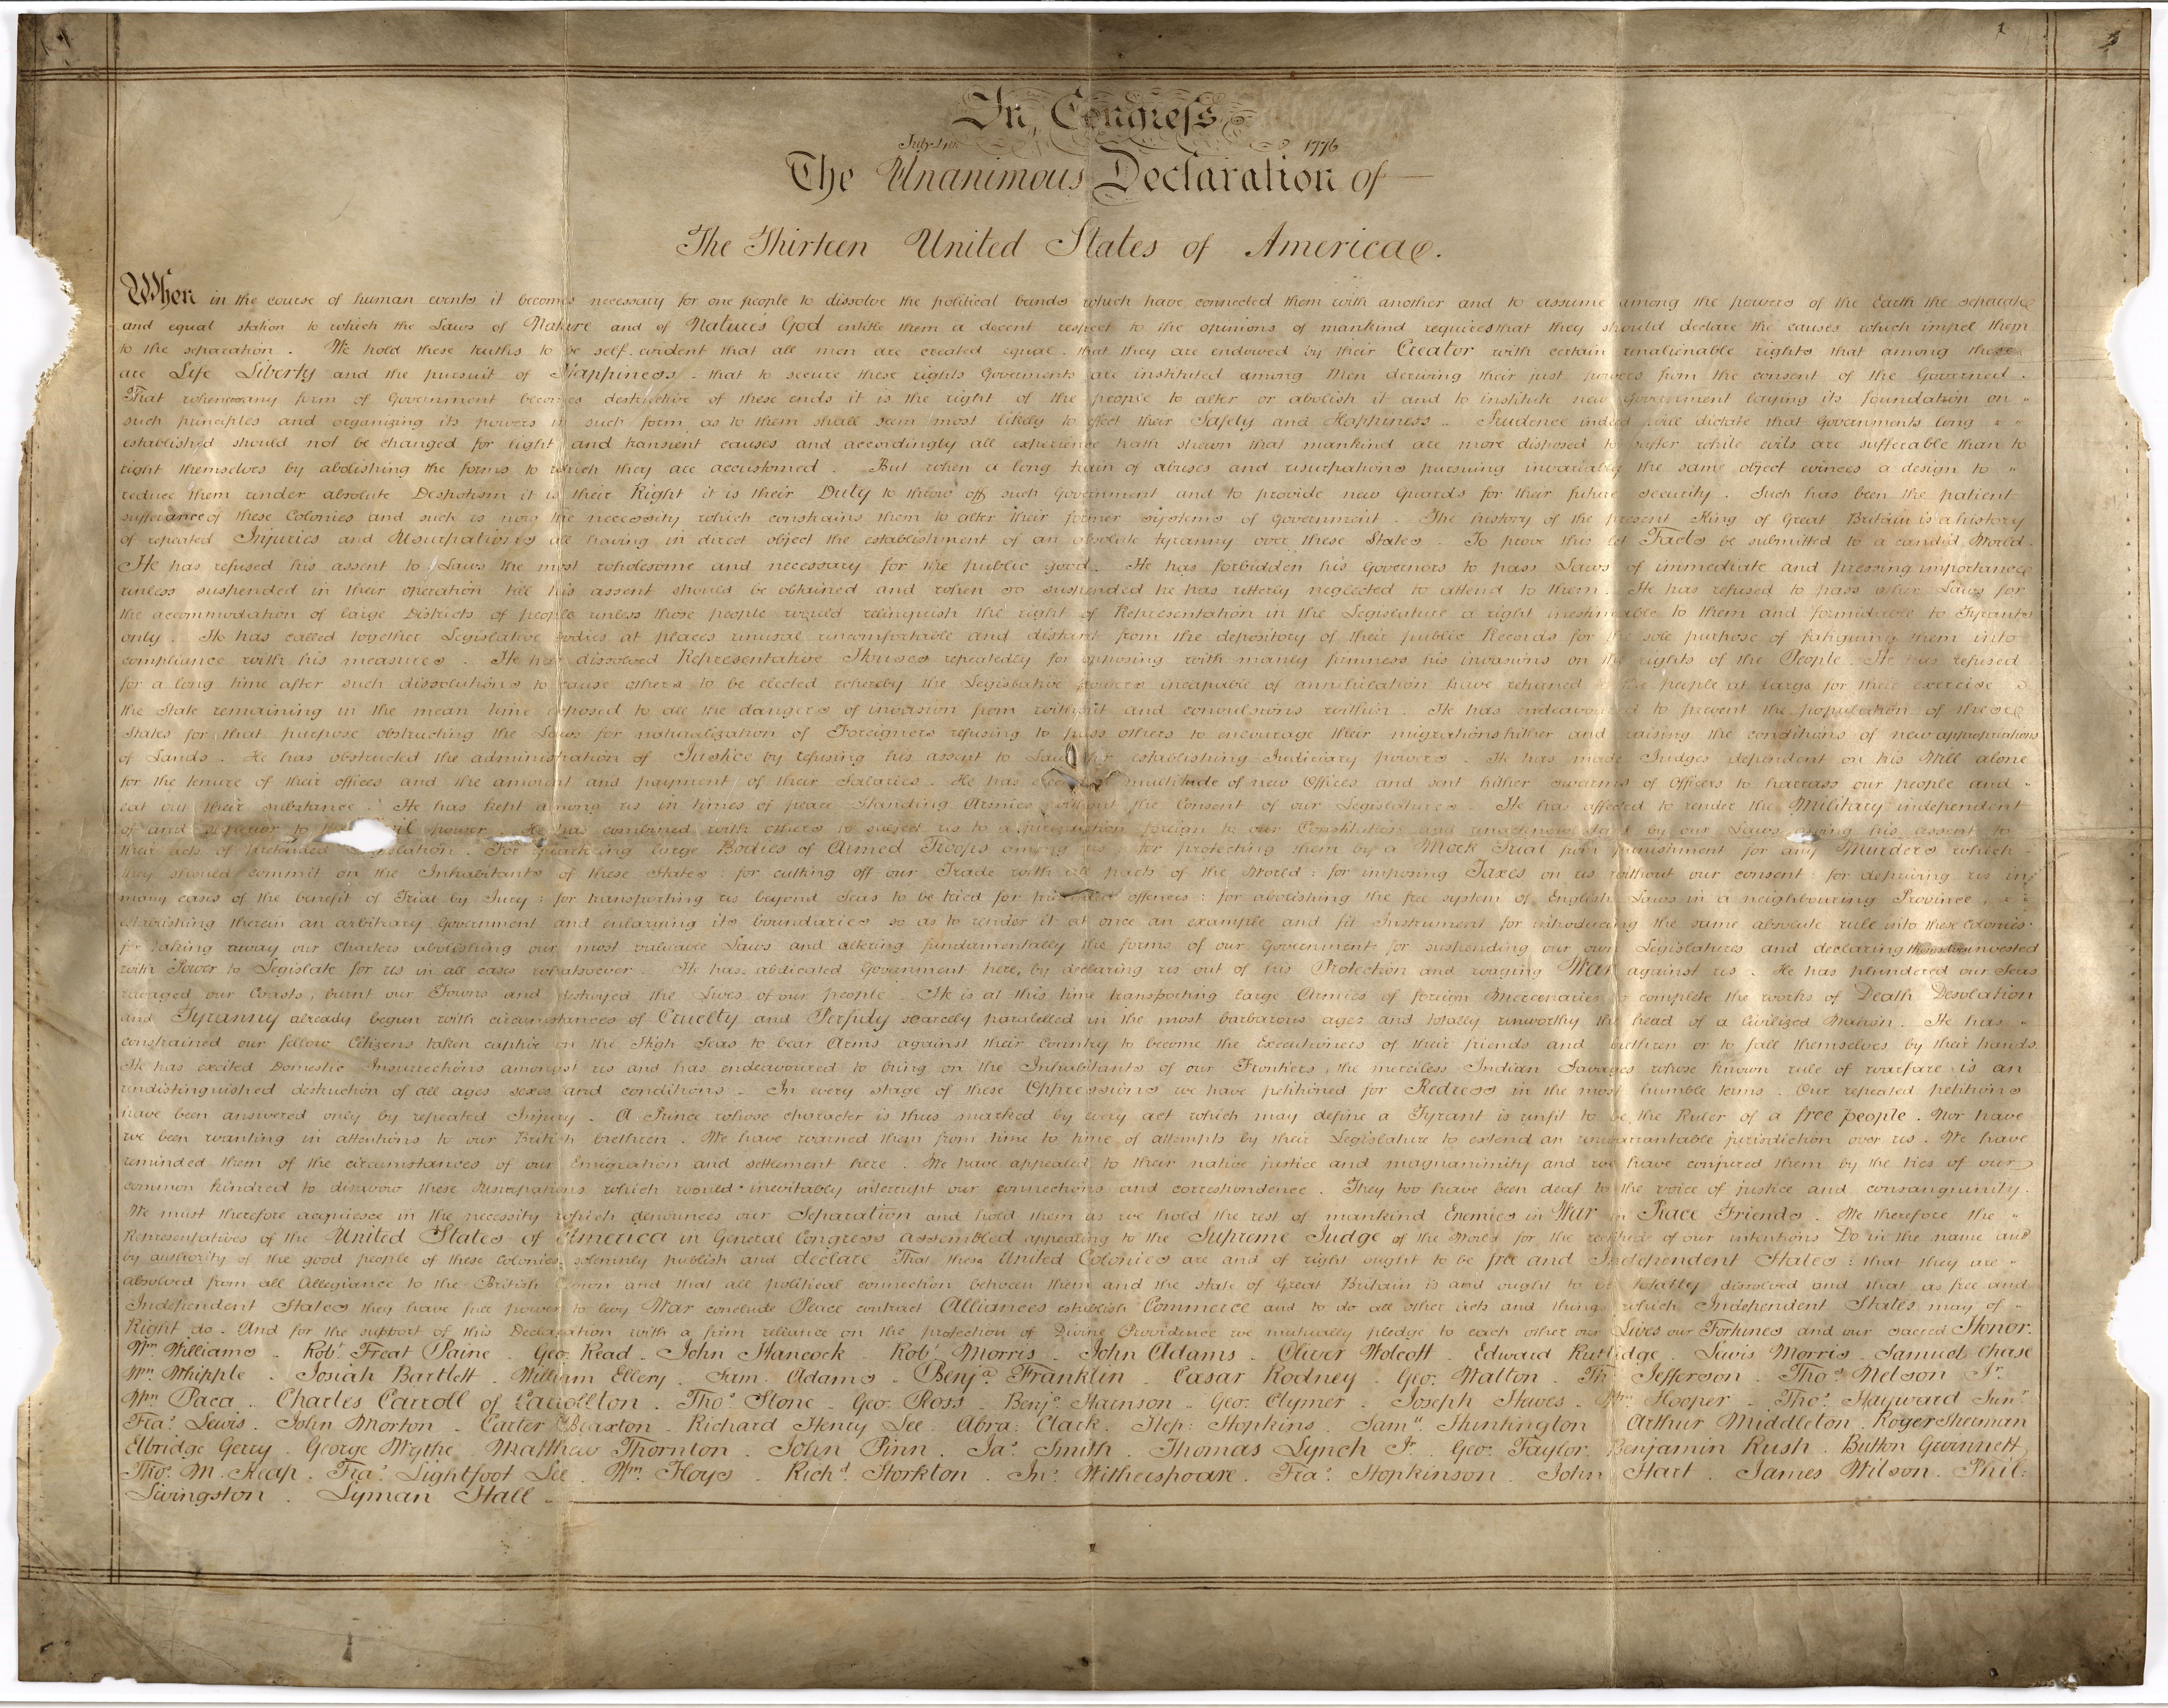 Second Handwritten Copy Of The Declaration Of Independence Discovered In England